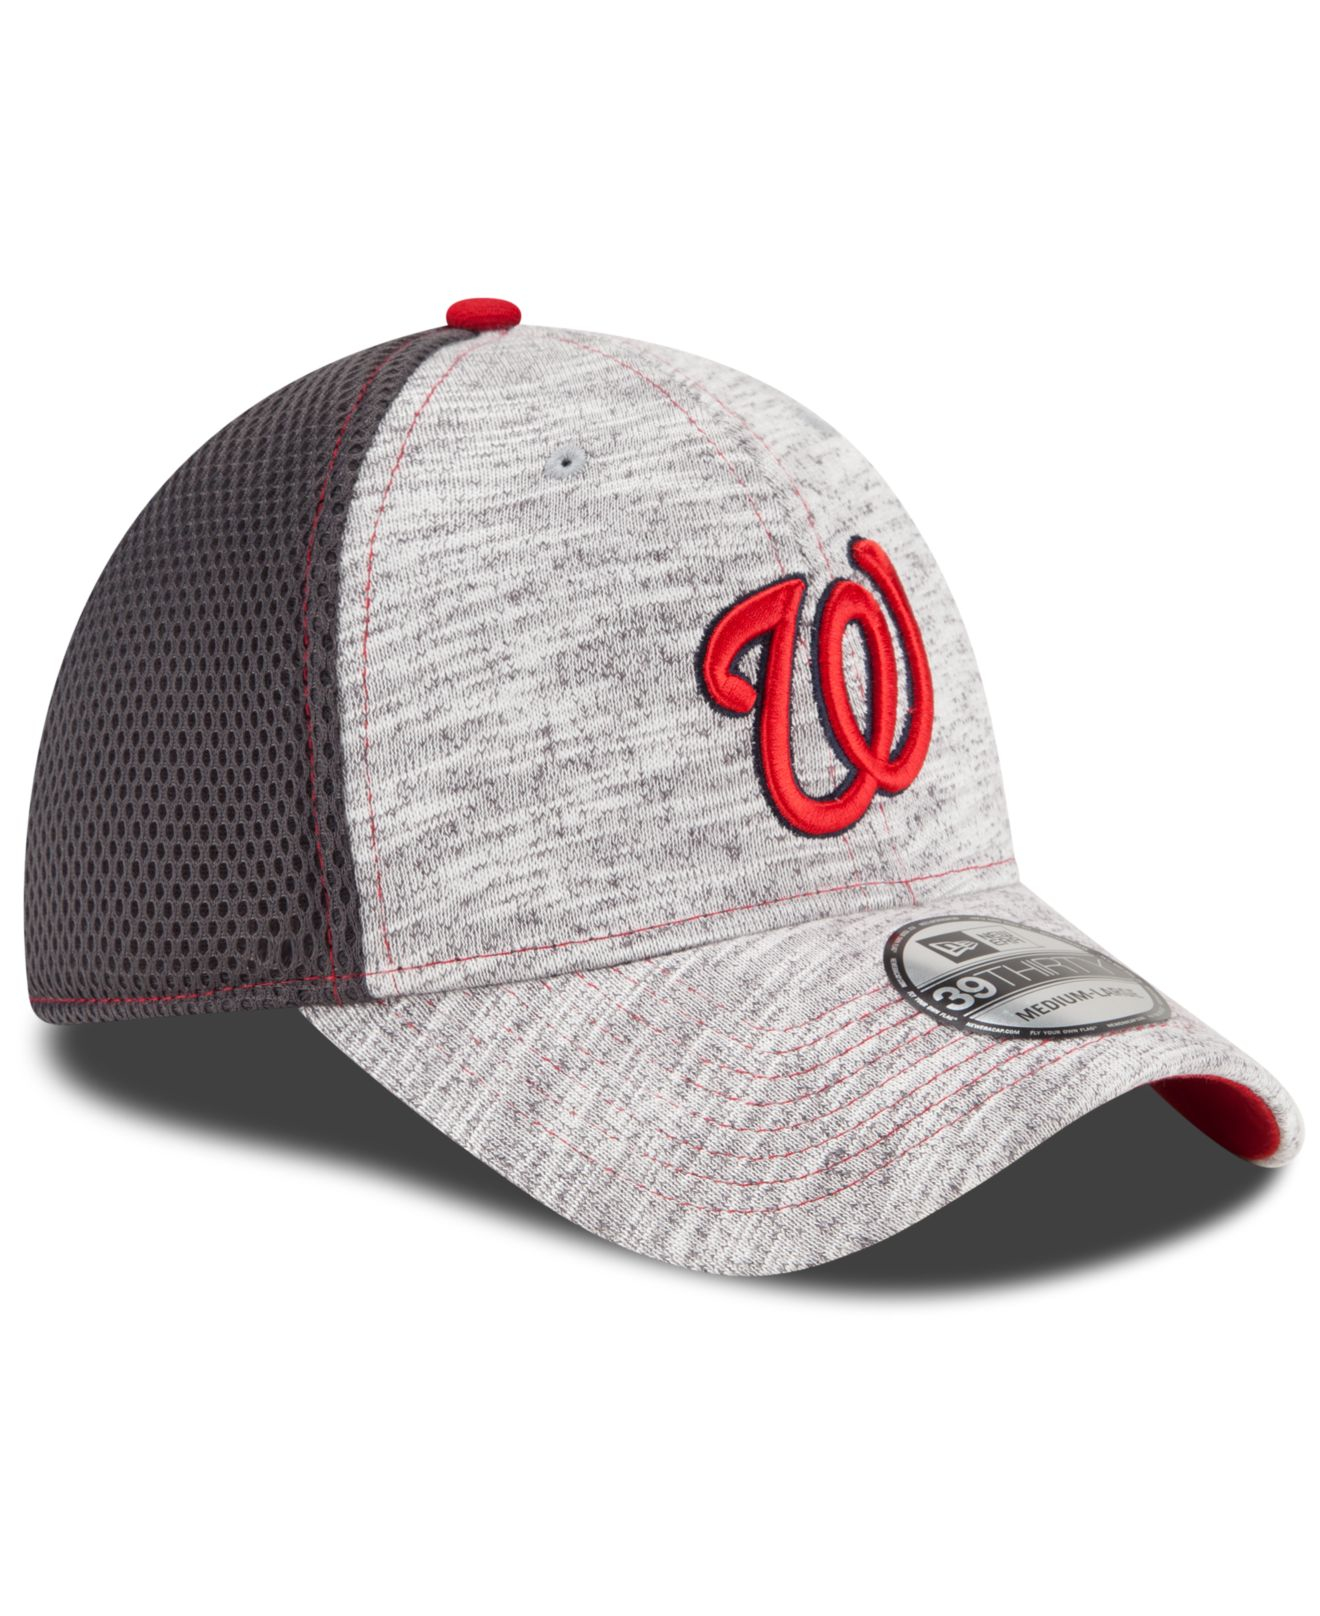 hot sale online e15d4 a7fe4 ... of mlb new era caps fa285 f2822  usa lyst ktz washington nationals  clubhouse 39thirty cap in gray for men 2aea9 bad52